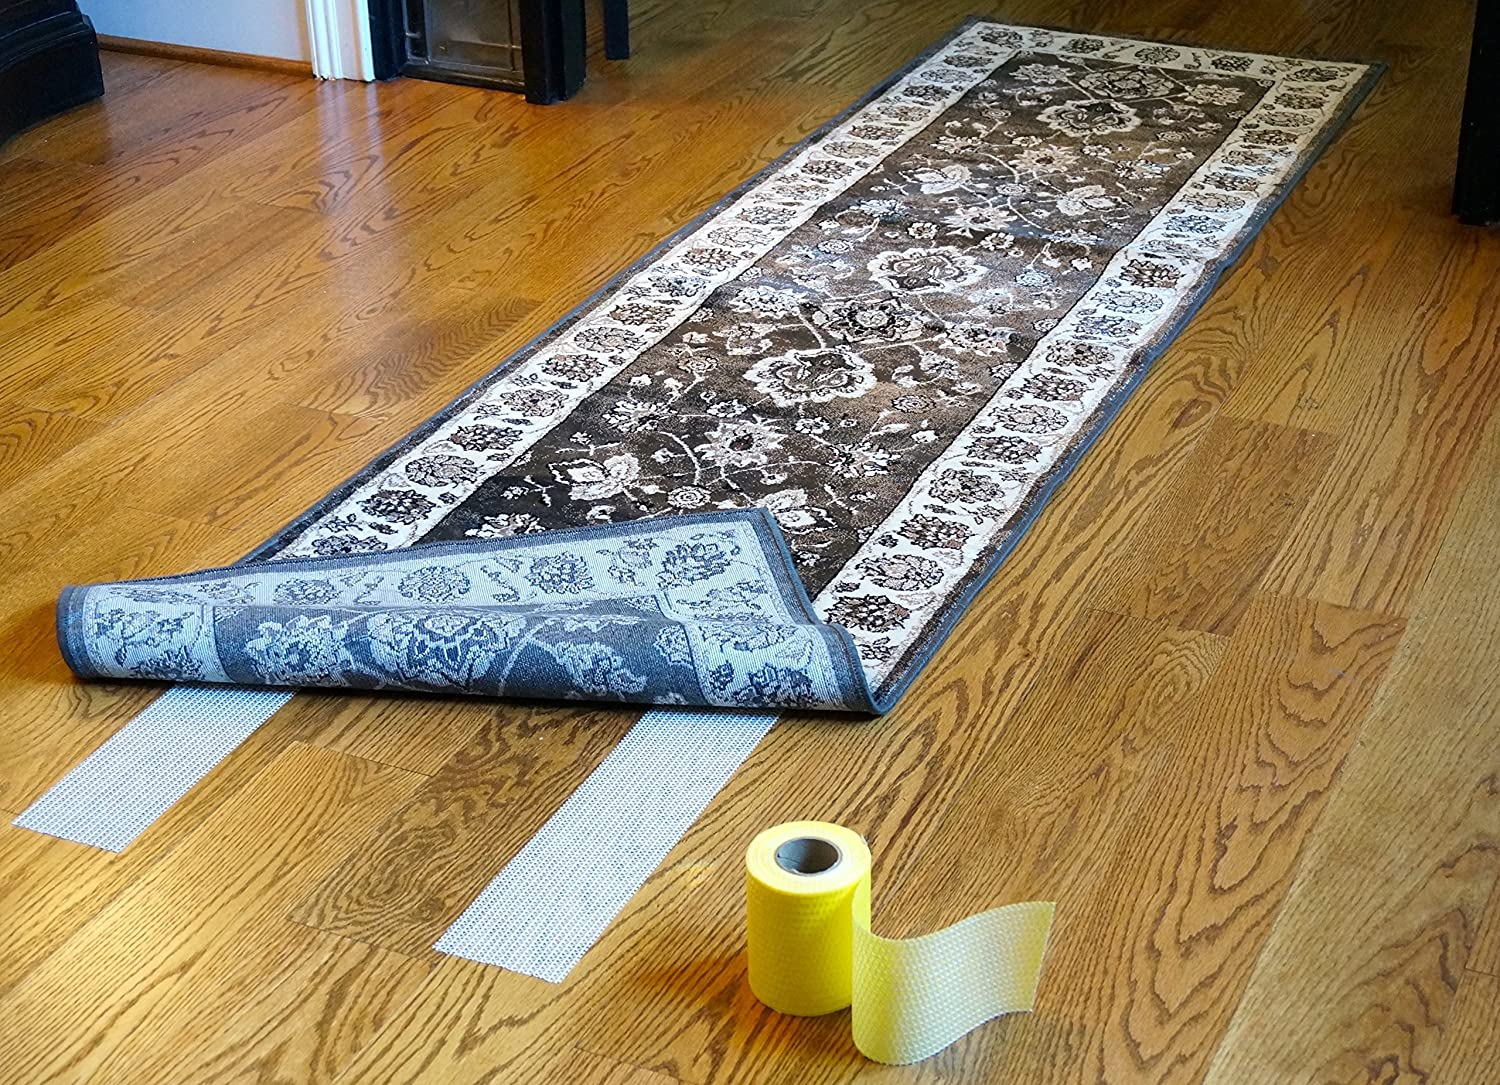 Optimum Technologies Lok Lift Rug Gripper for Runners, 4 Inch by 25 Feet. The original slip resistant rug solution 425R-6